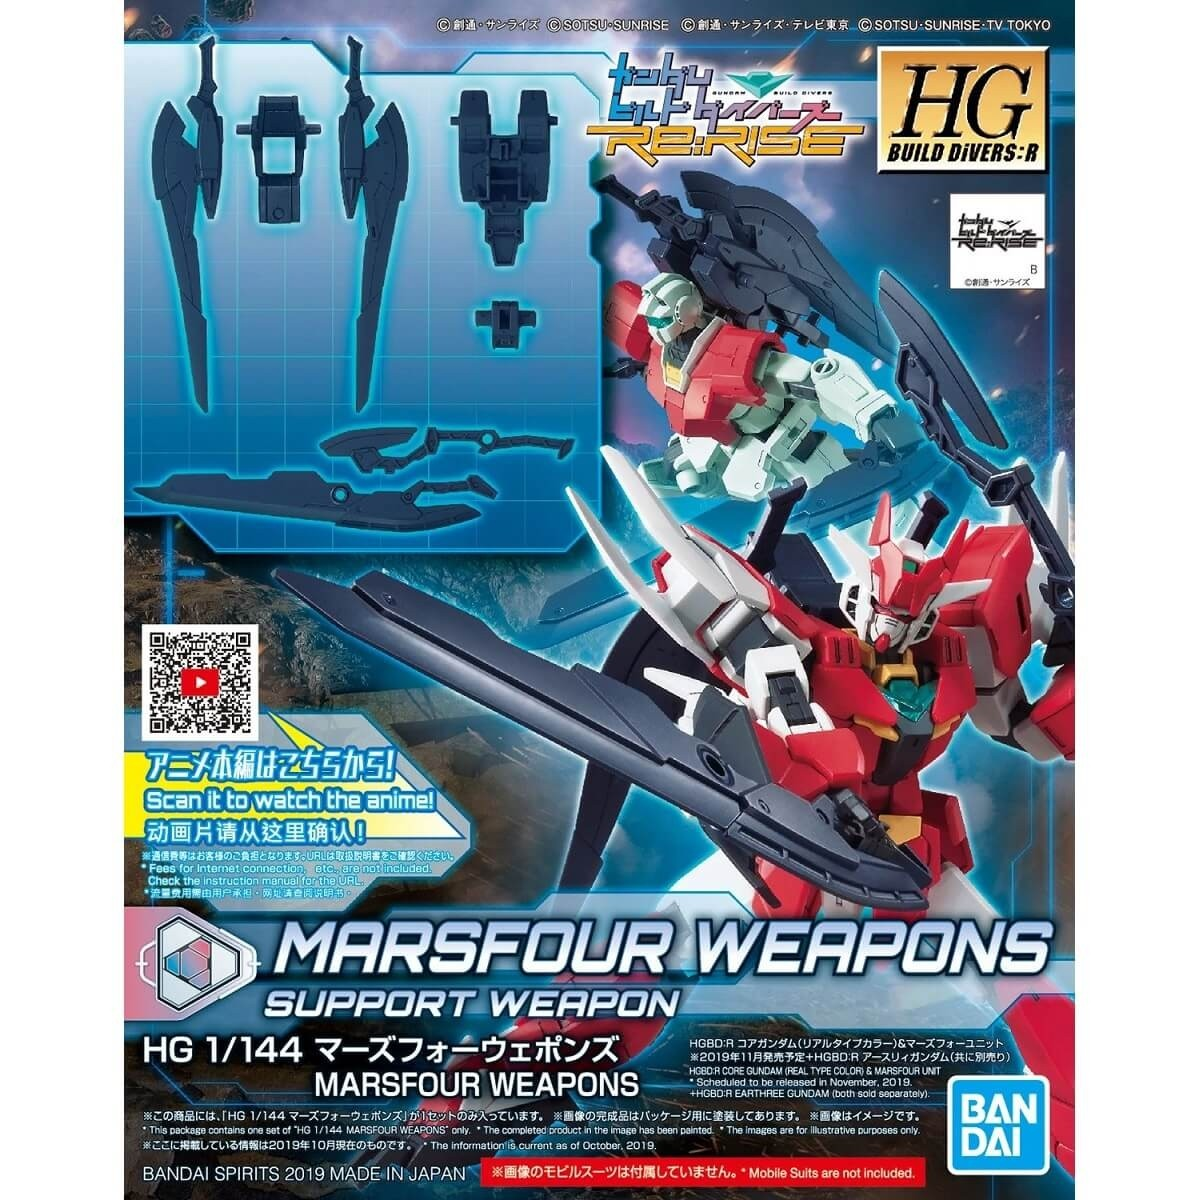 Bandai HG 1:144 Marsfour Weapons Plastic Model Kit